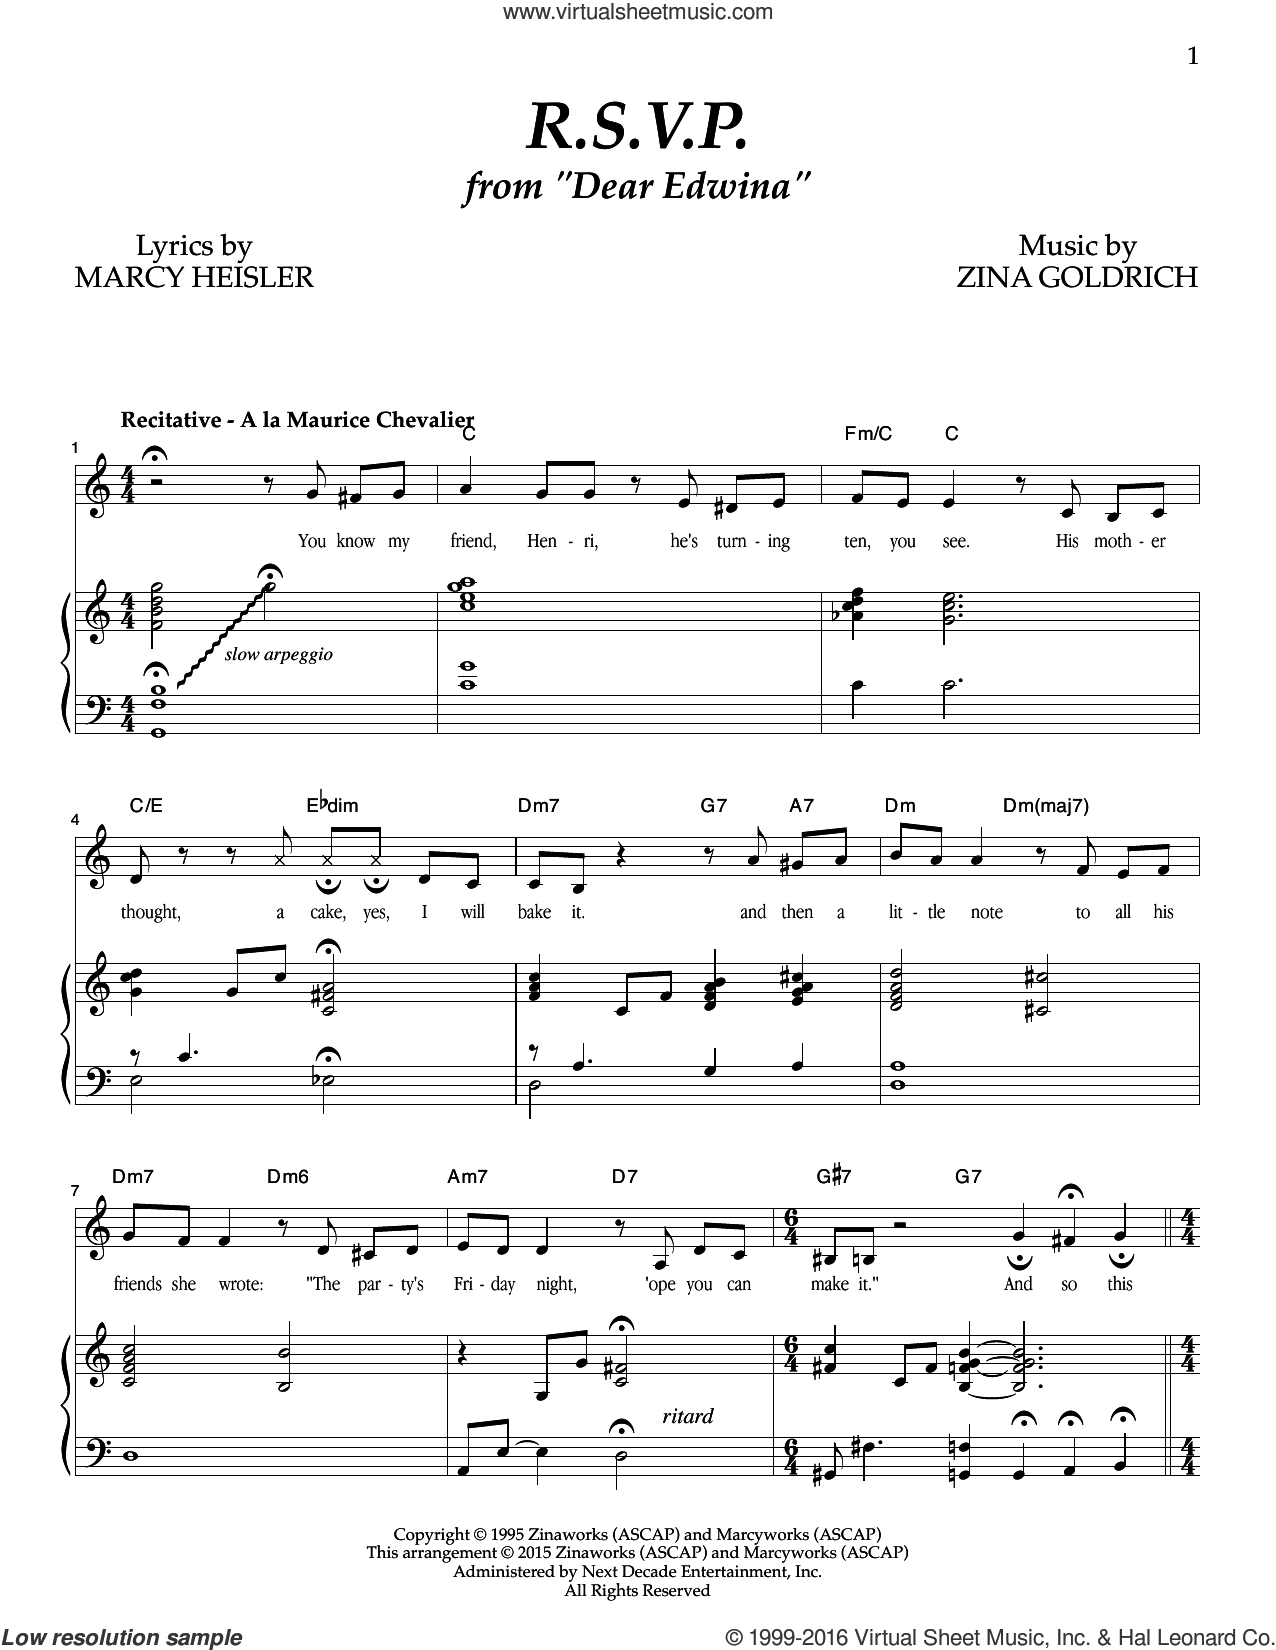 R.S.V.P. sheet music for voice and piano by Goldrich & Heisler, Marcy Heisler and Zina Goldrich, intermediate skill level